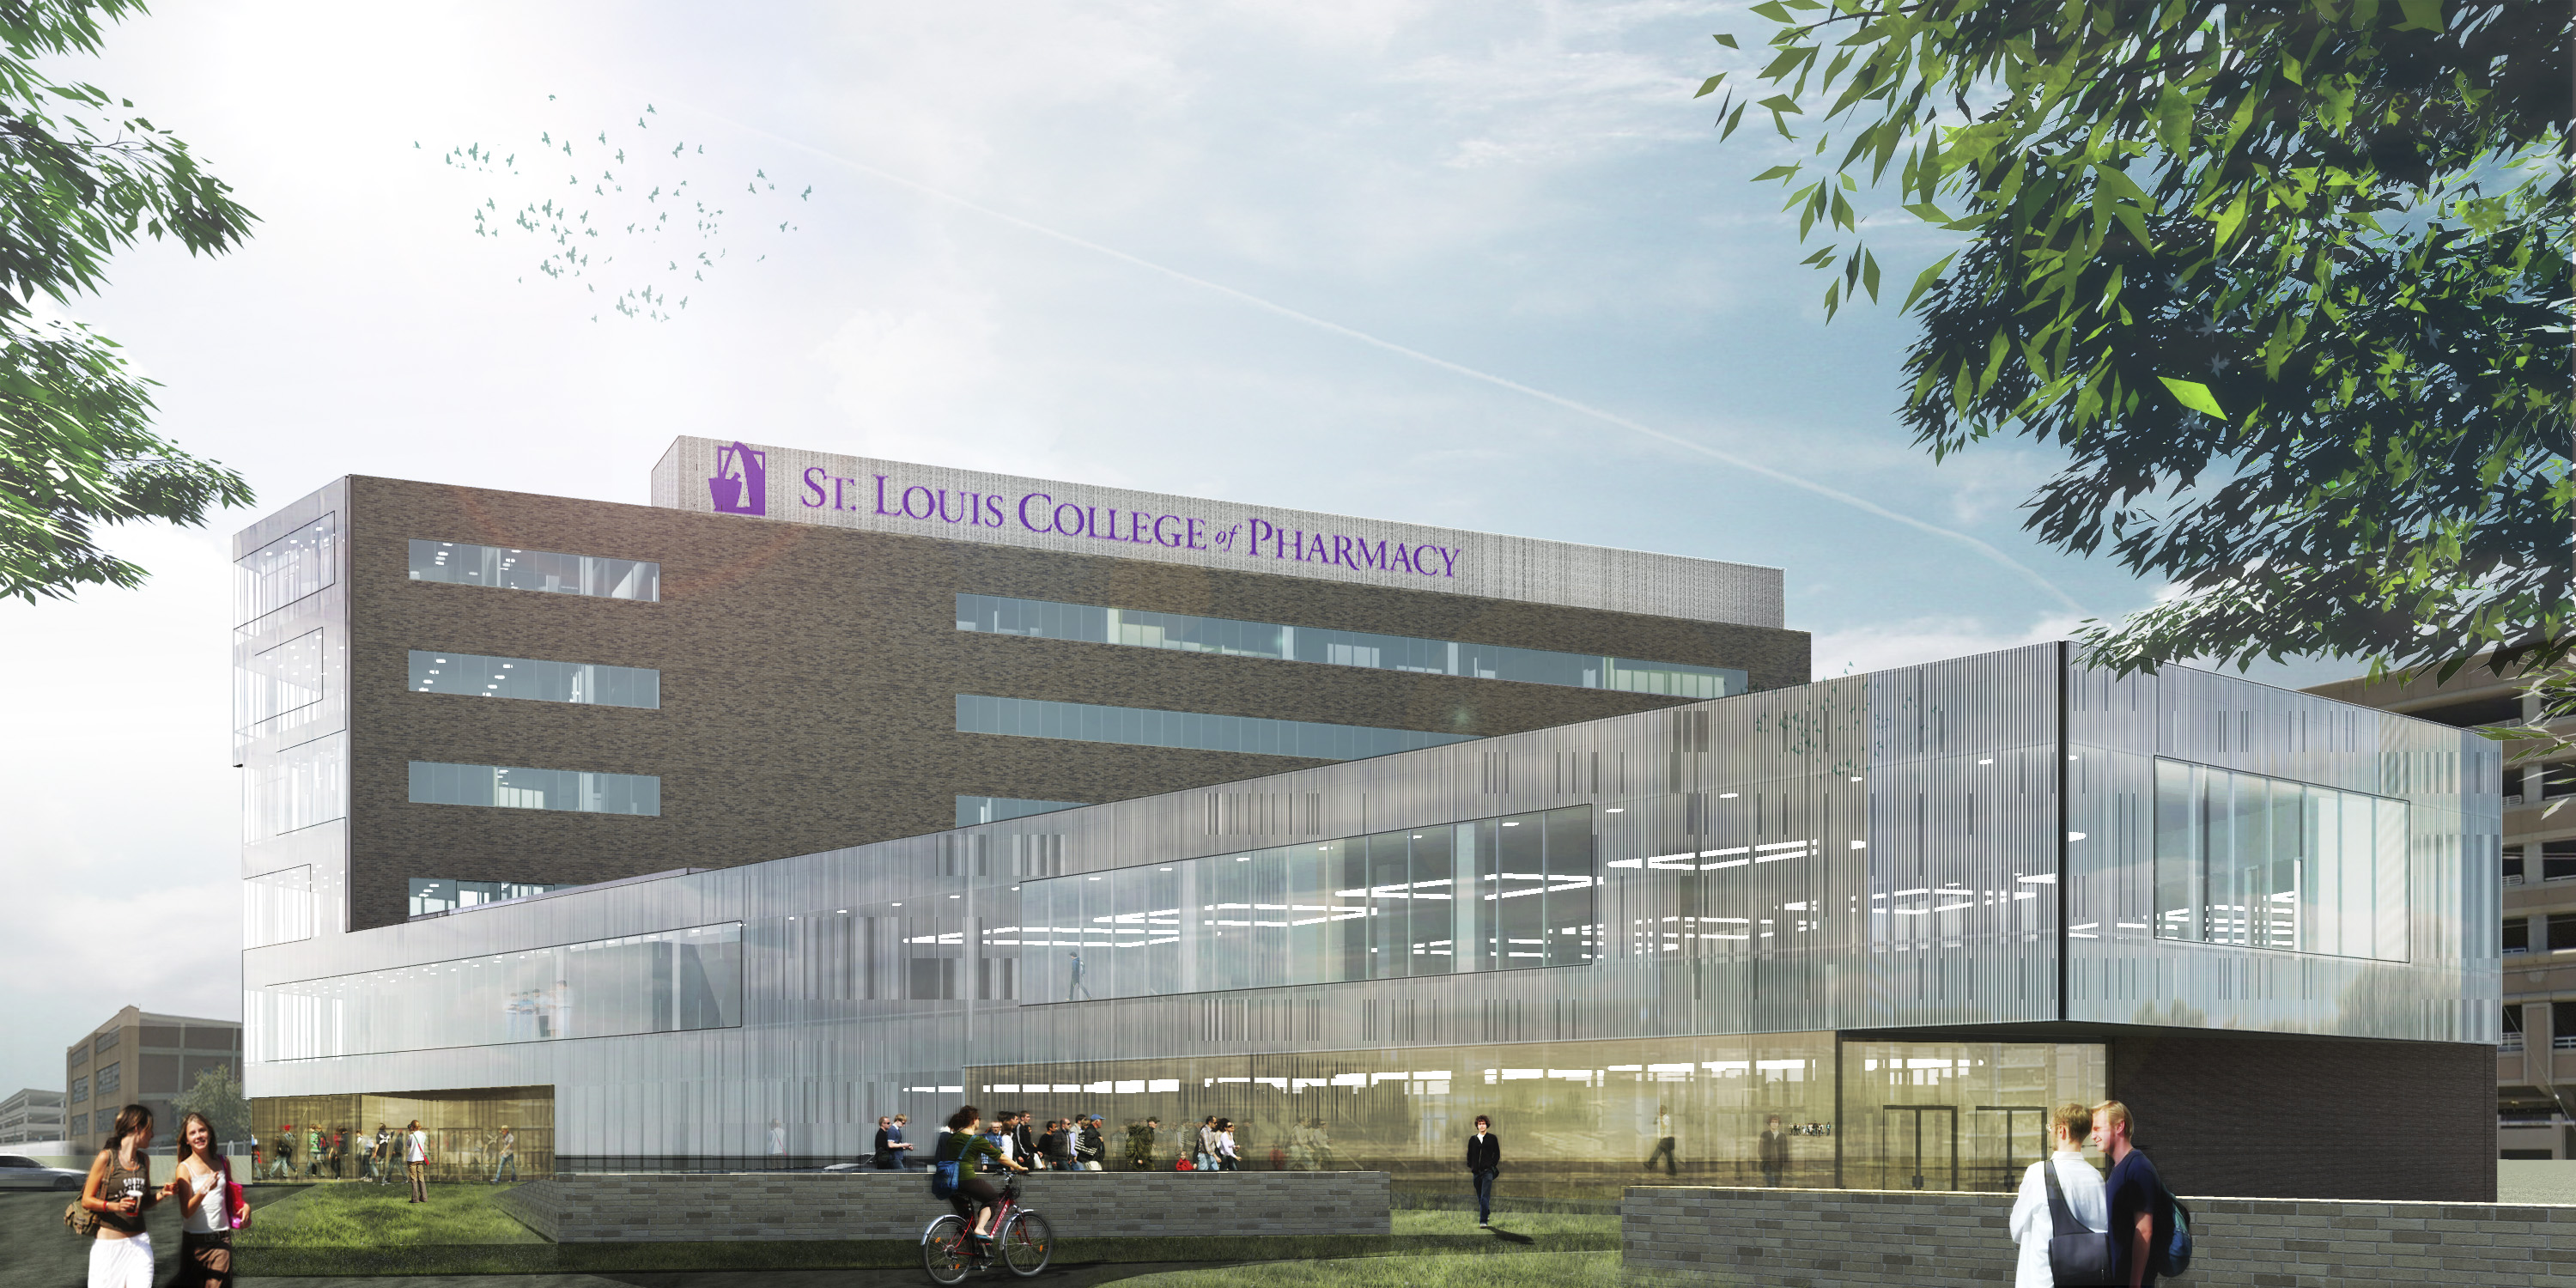 St. Louis College of Pharmacy - St. Louis, MO